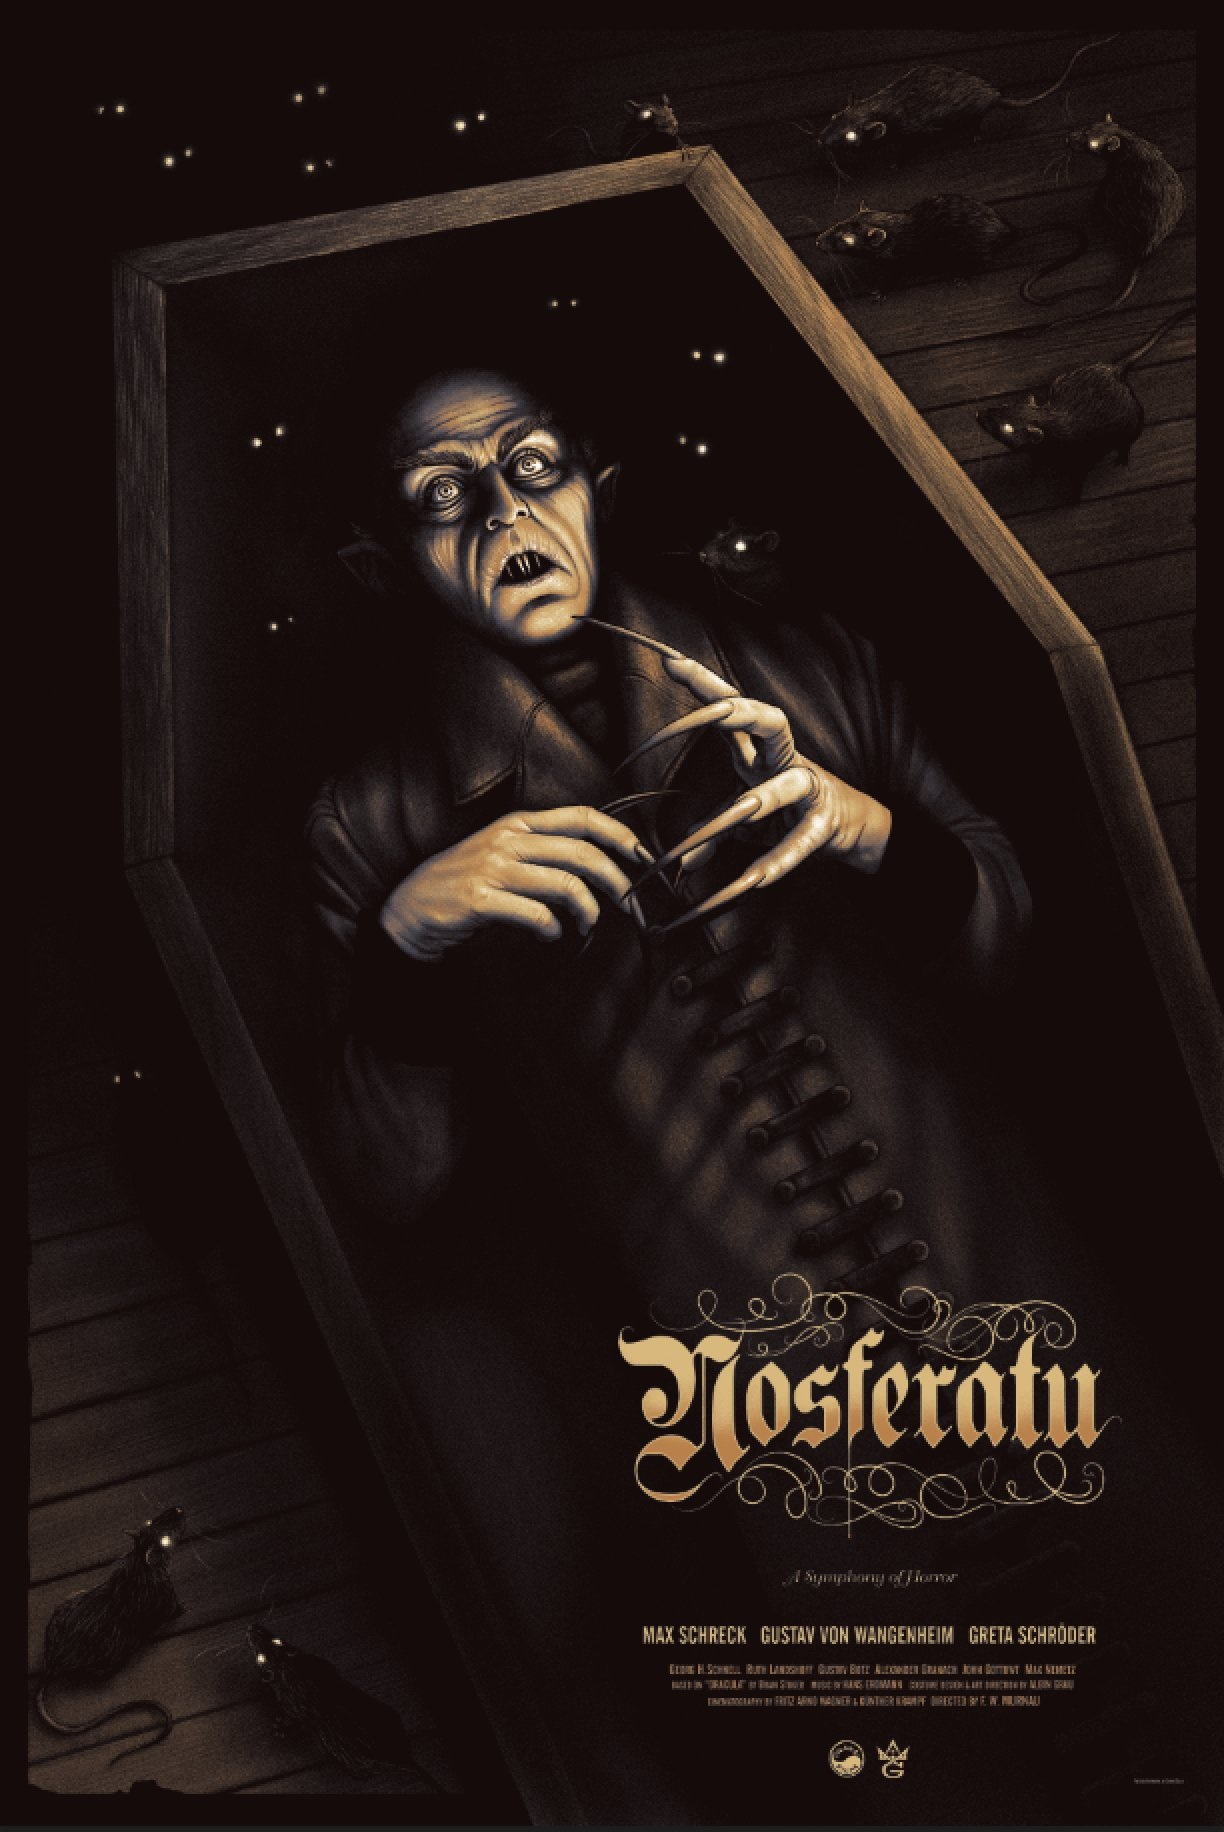 Grey Matter's New 'Nosferatu' Poster is a Glow in the Dark